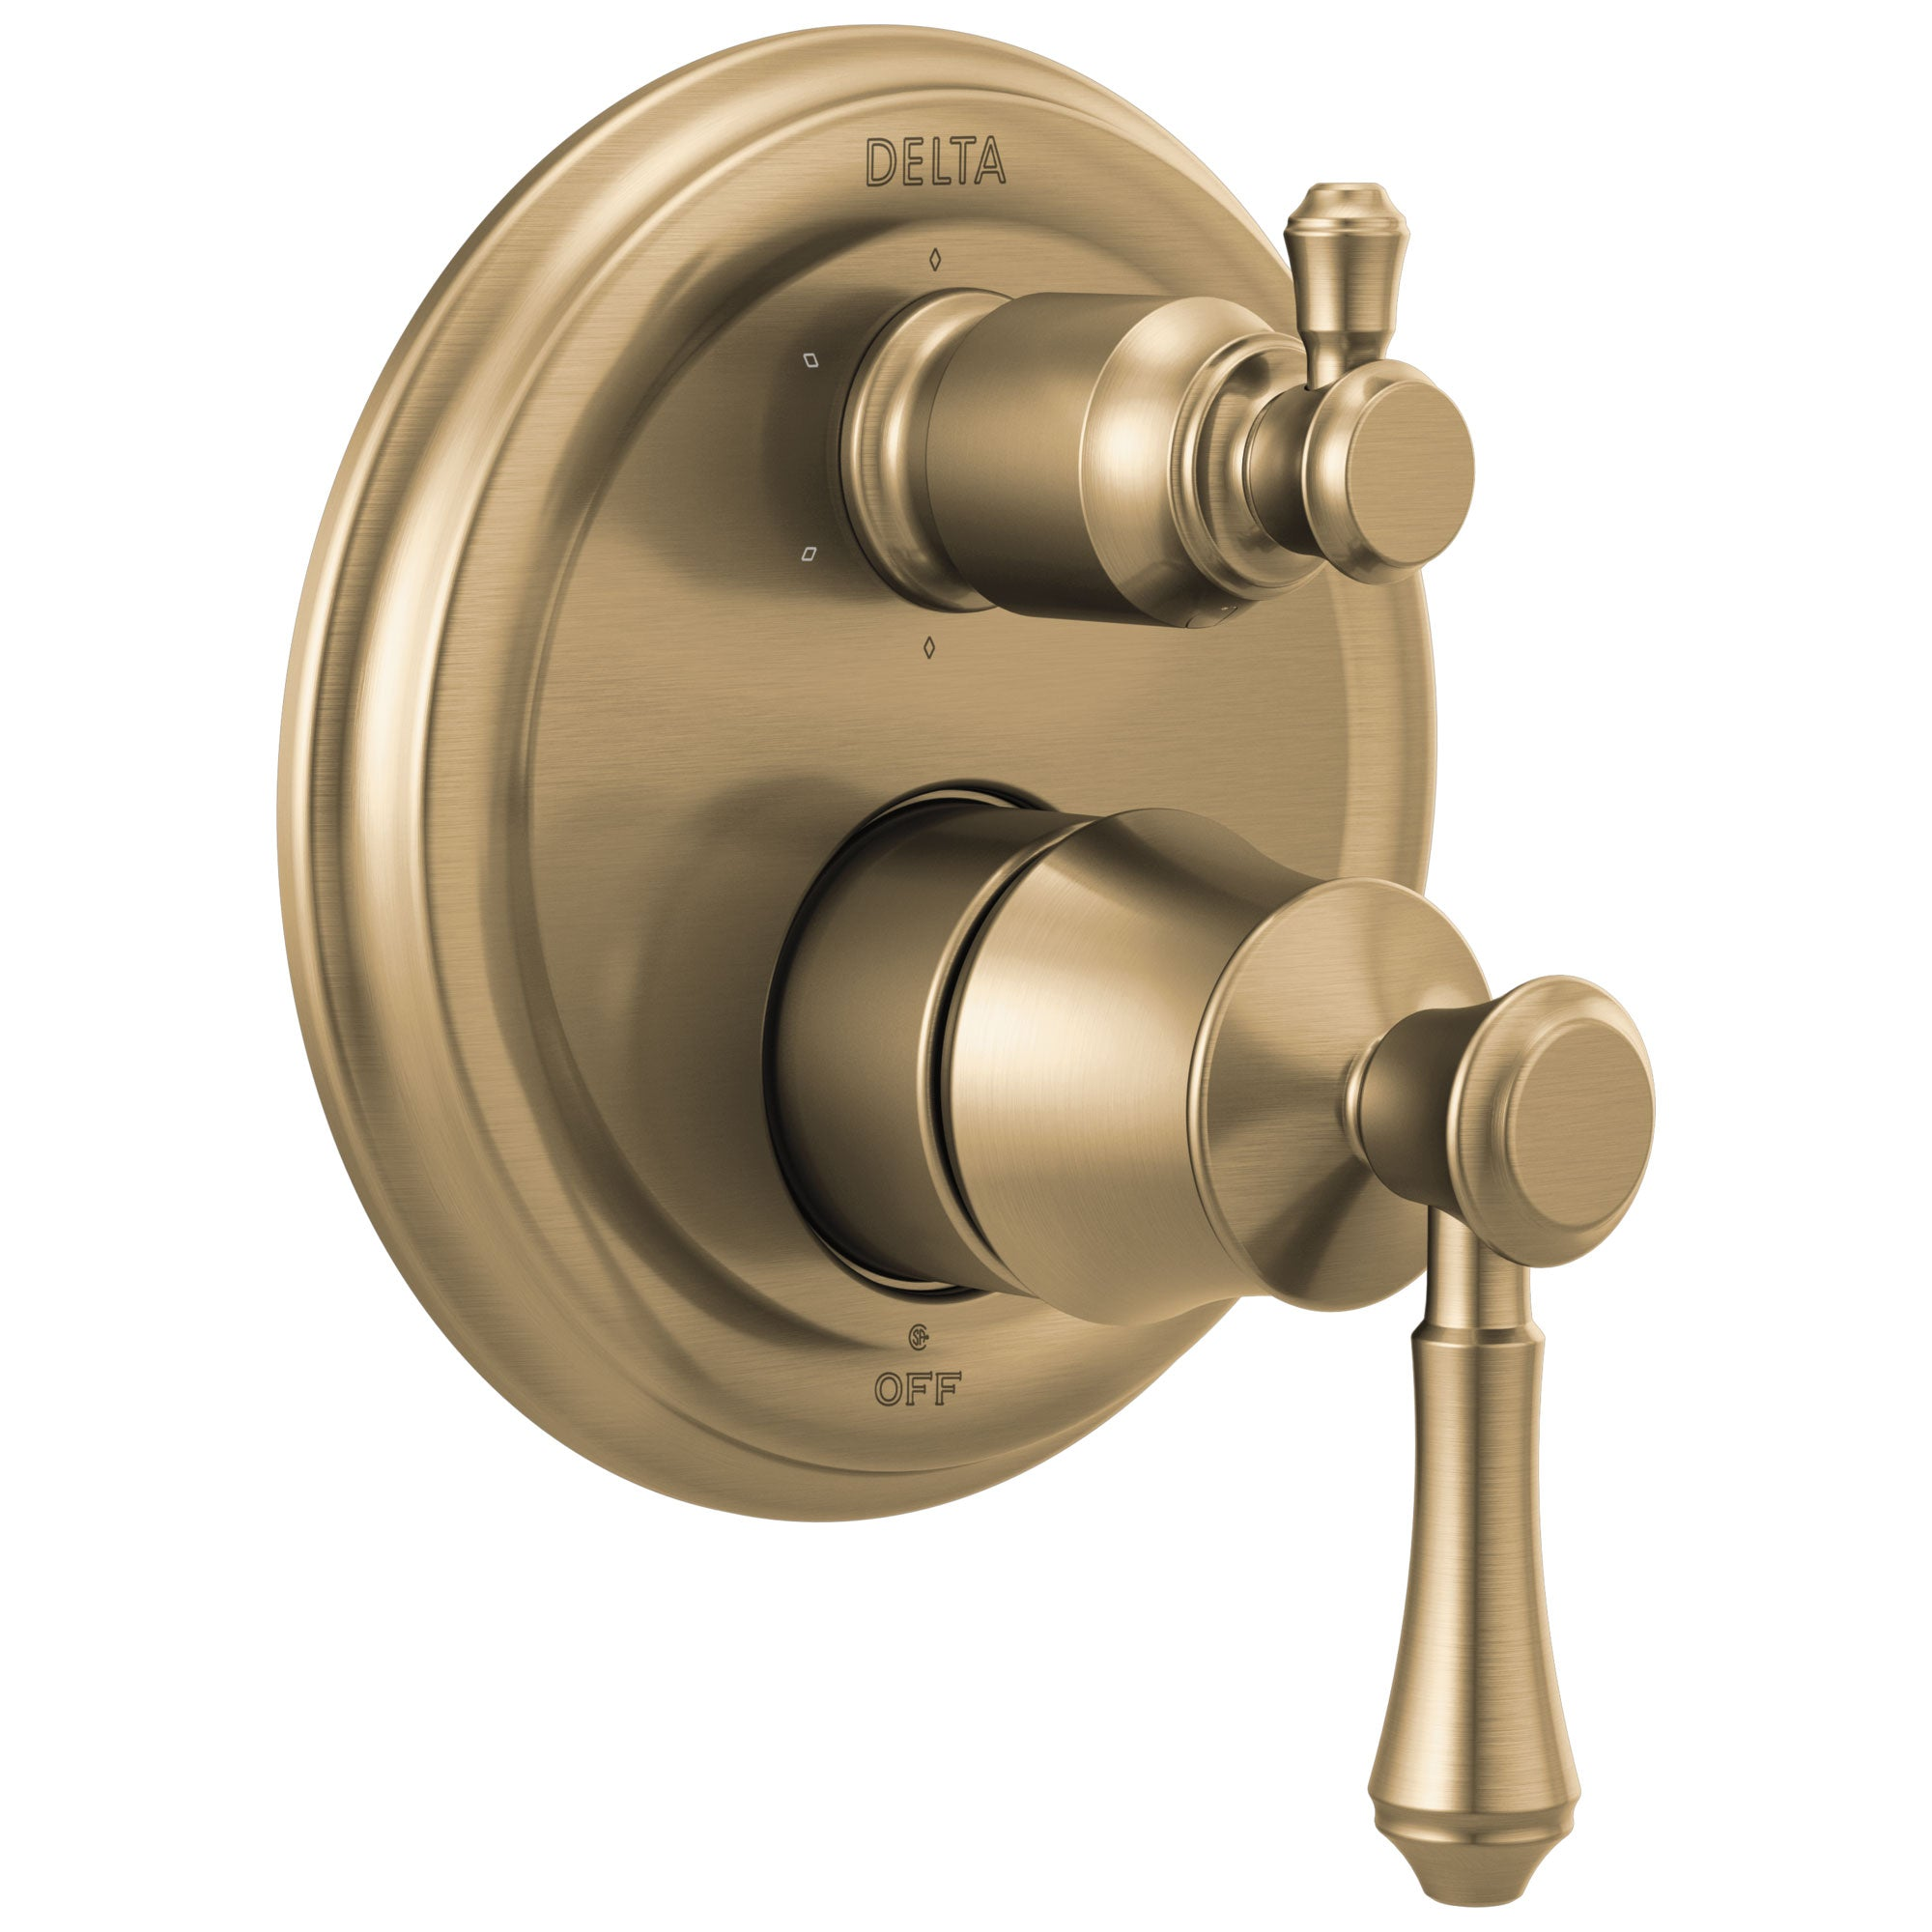 Delta Cassidy Champagne Bronze Finish Traditional Monitor 14 Series Shower Control Valve Trim Kit with 6-Setting Integrated Diverter (Requires Valve) DT24997CZ